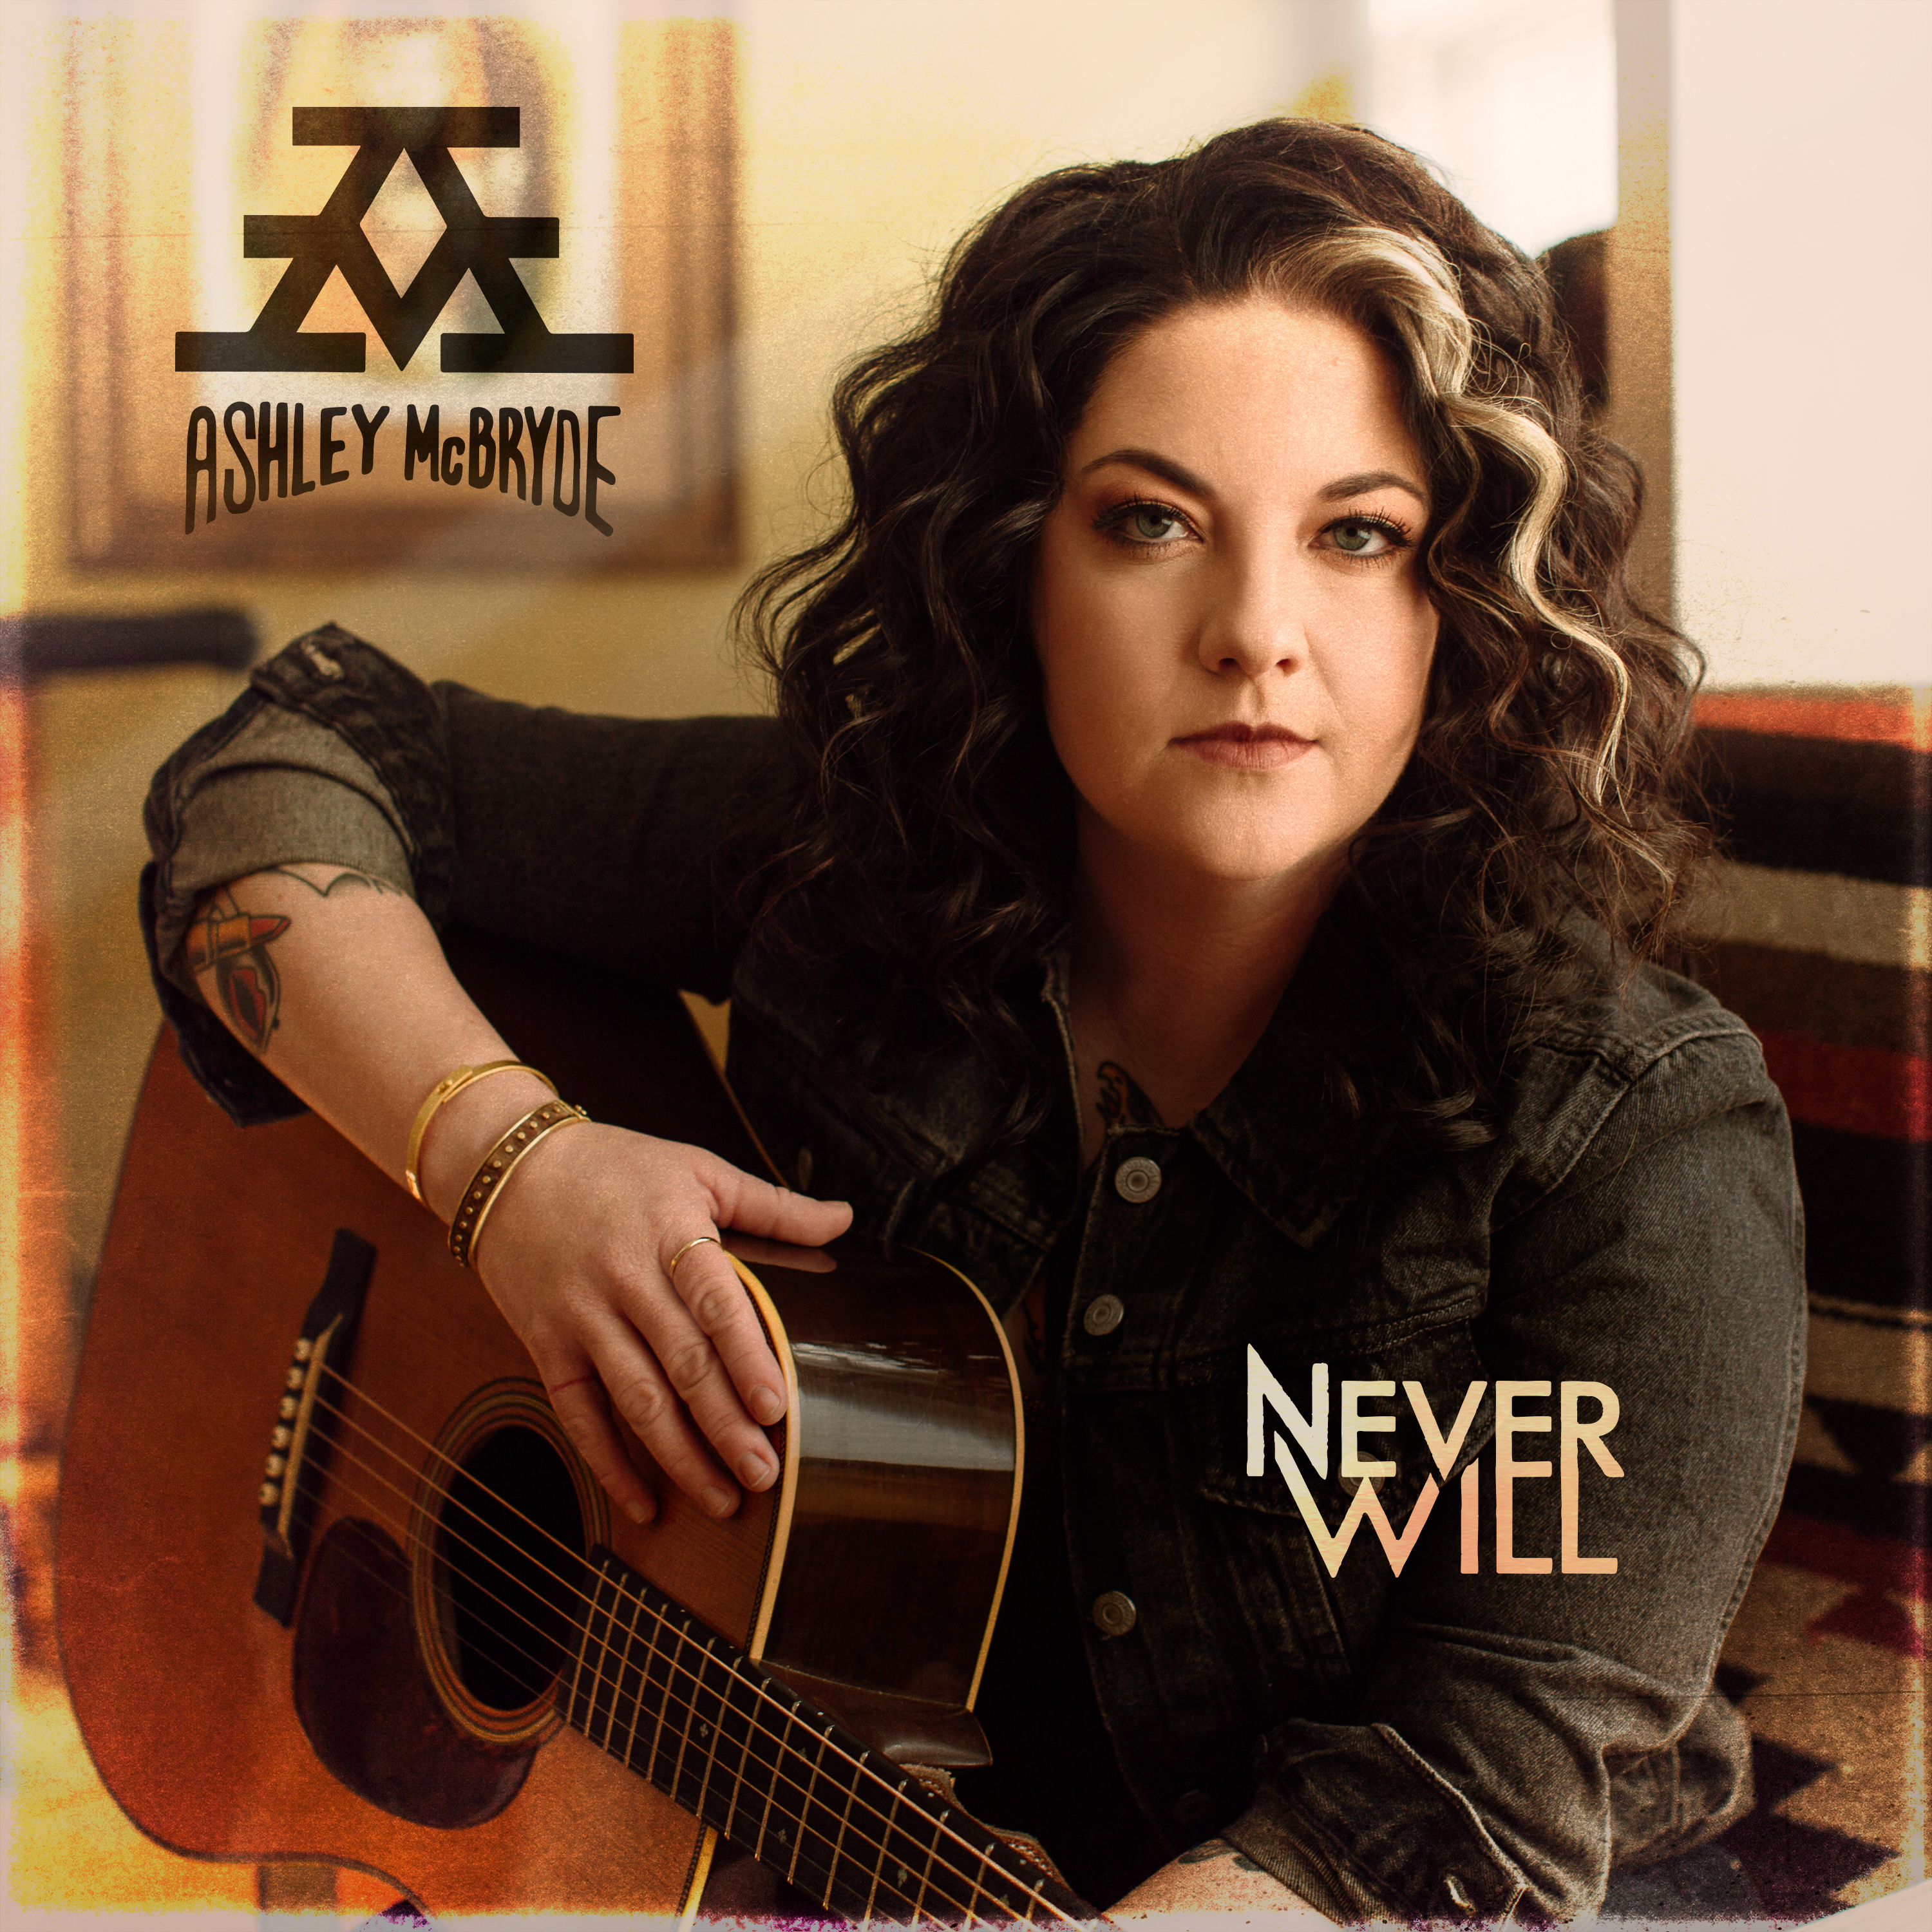 Ashley McBrydes GRAMMY-Nominated Never Will Closes Out 2020 with Applause from Critics